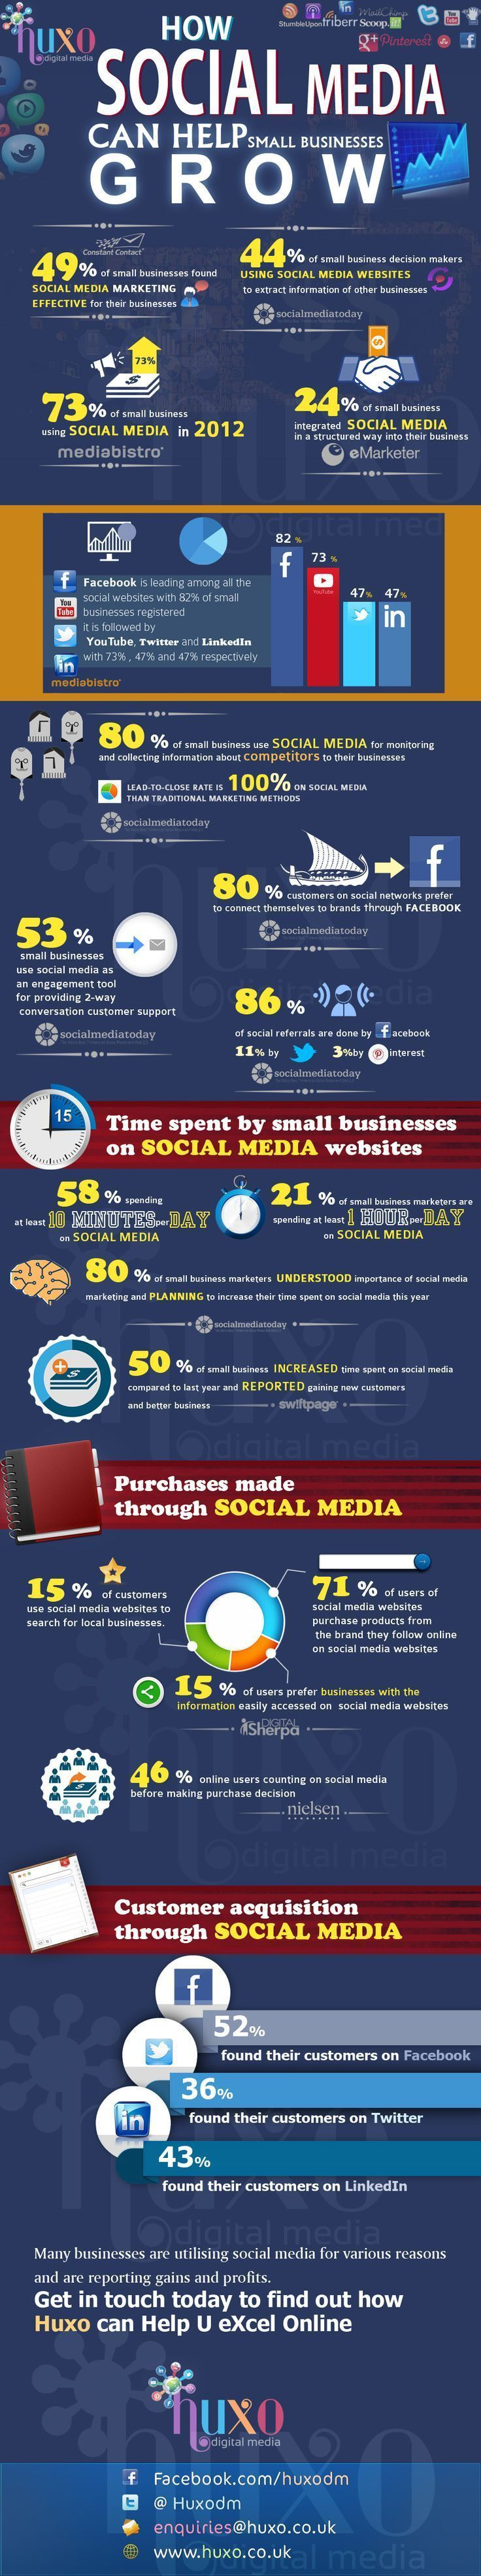 How Social Media can help Local Business Grow [Infographic]